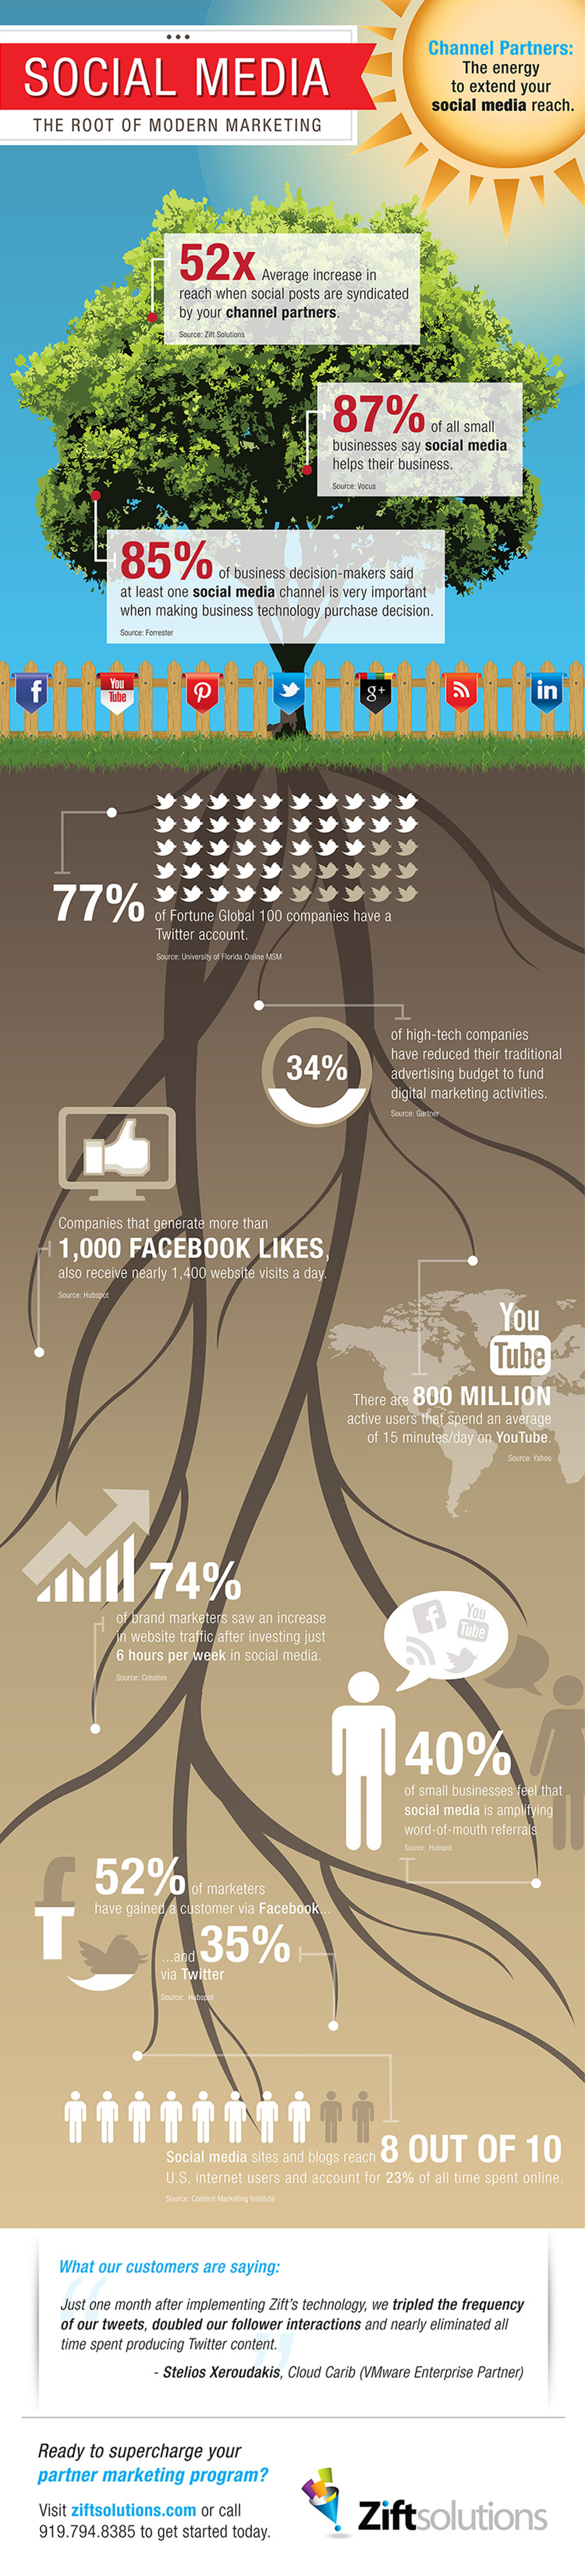 How Social Media Extends the Reach of Channel Partners Infographic